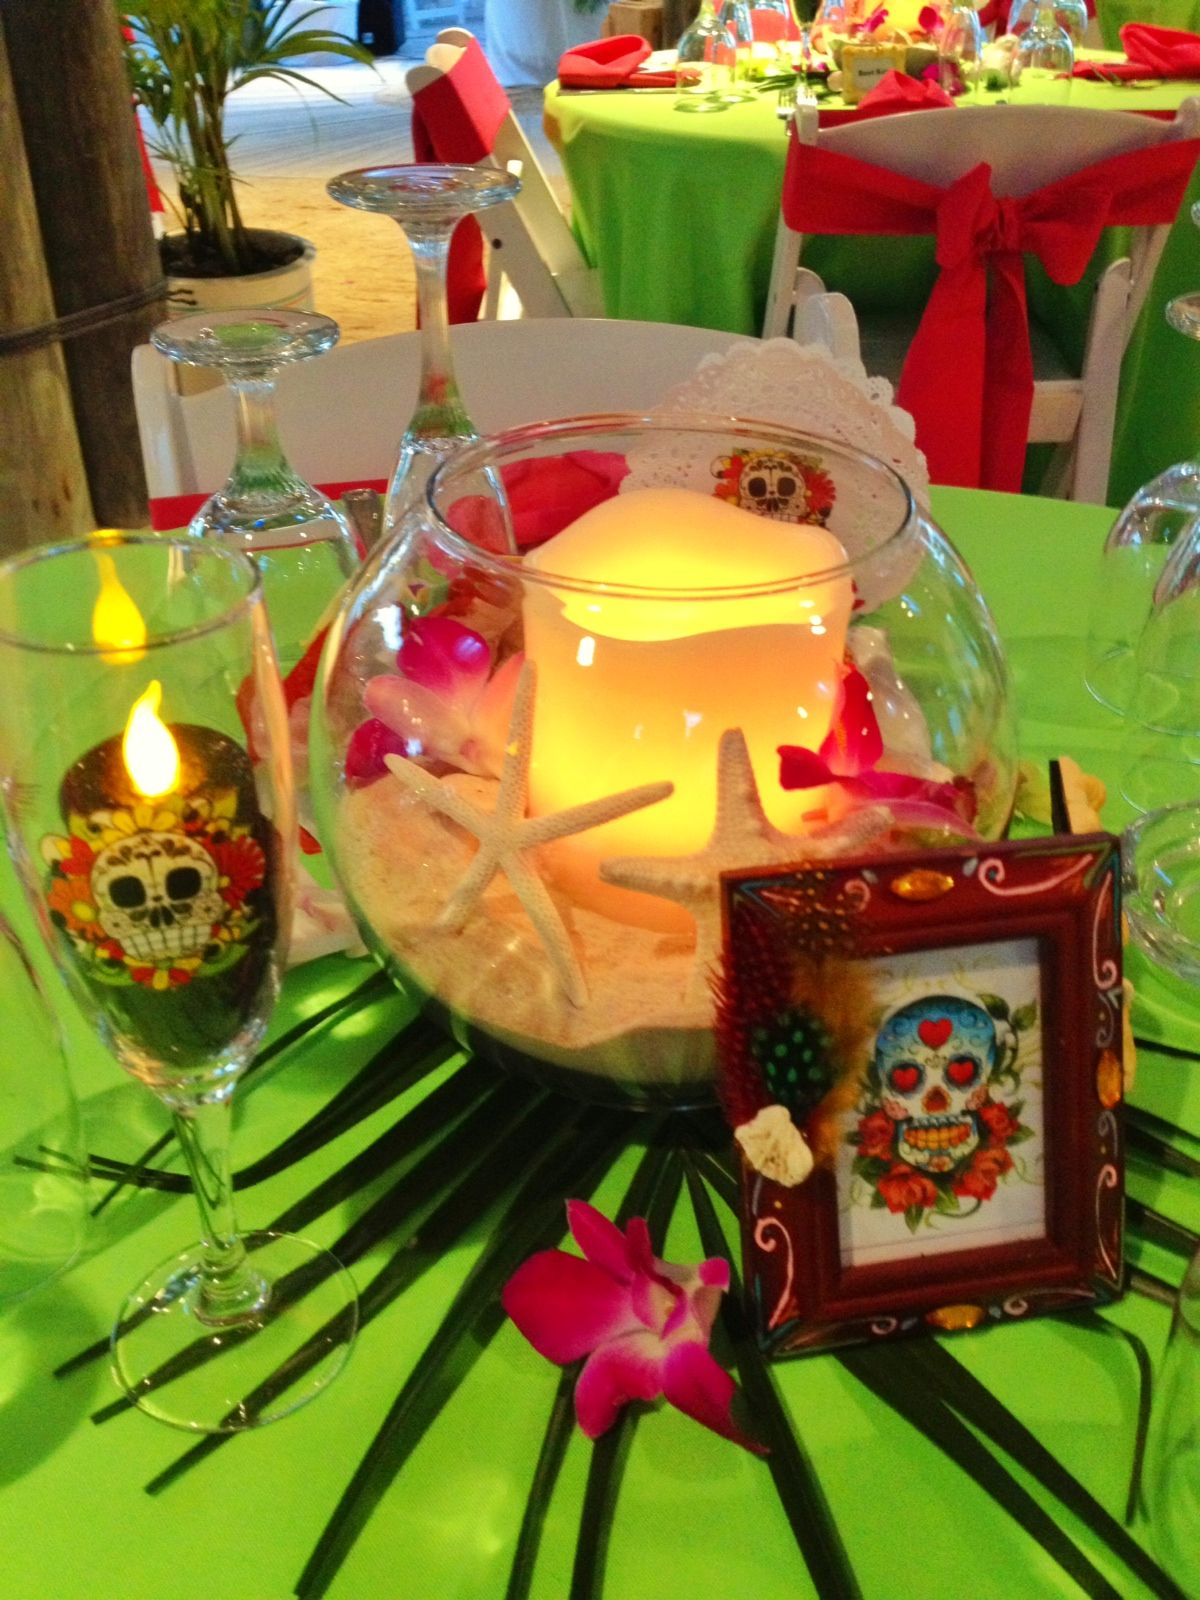 Dia de Los muertos wedding theme | My wedding in 2018 | Pinterest ...